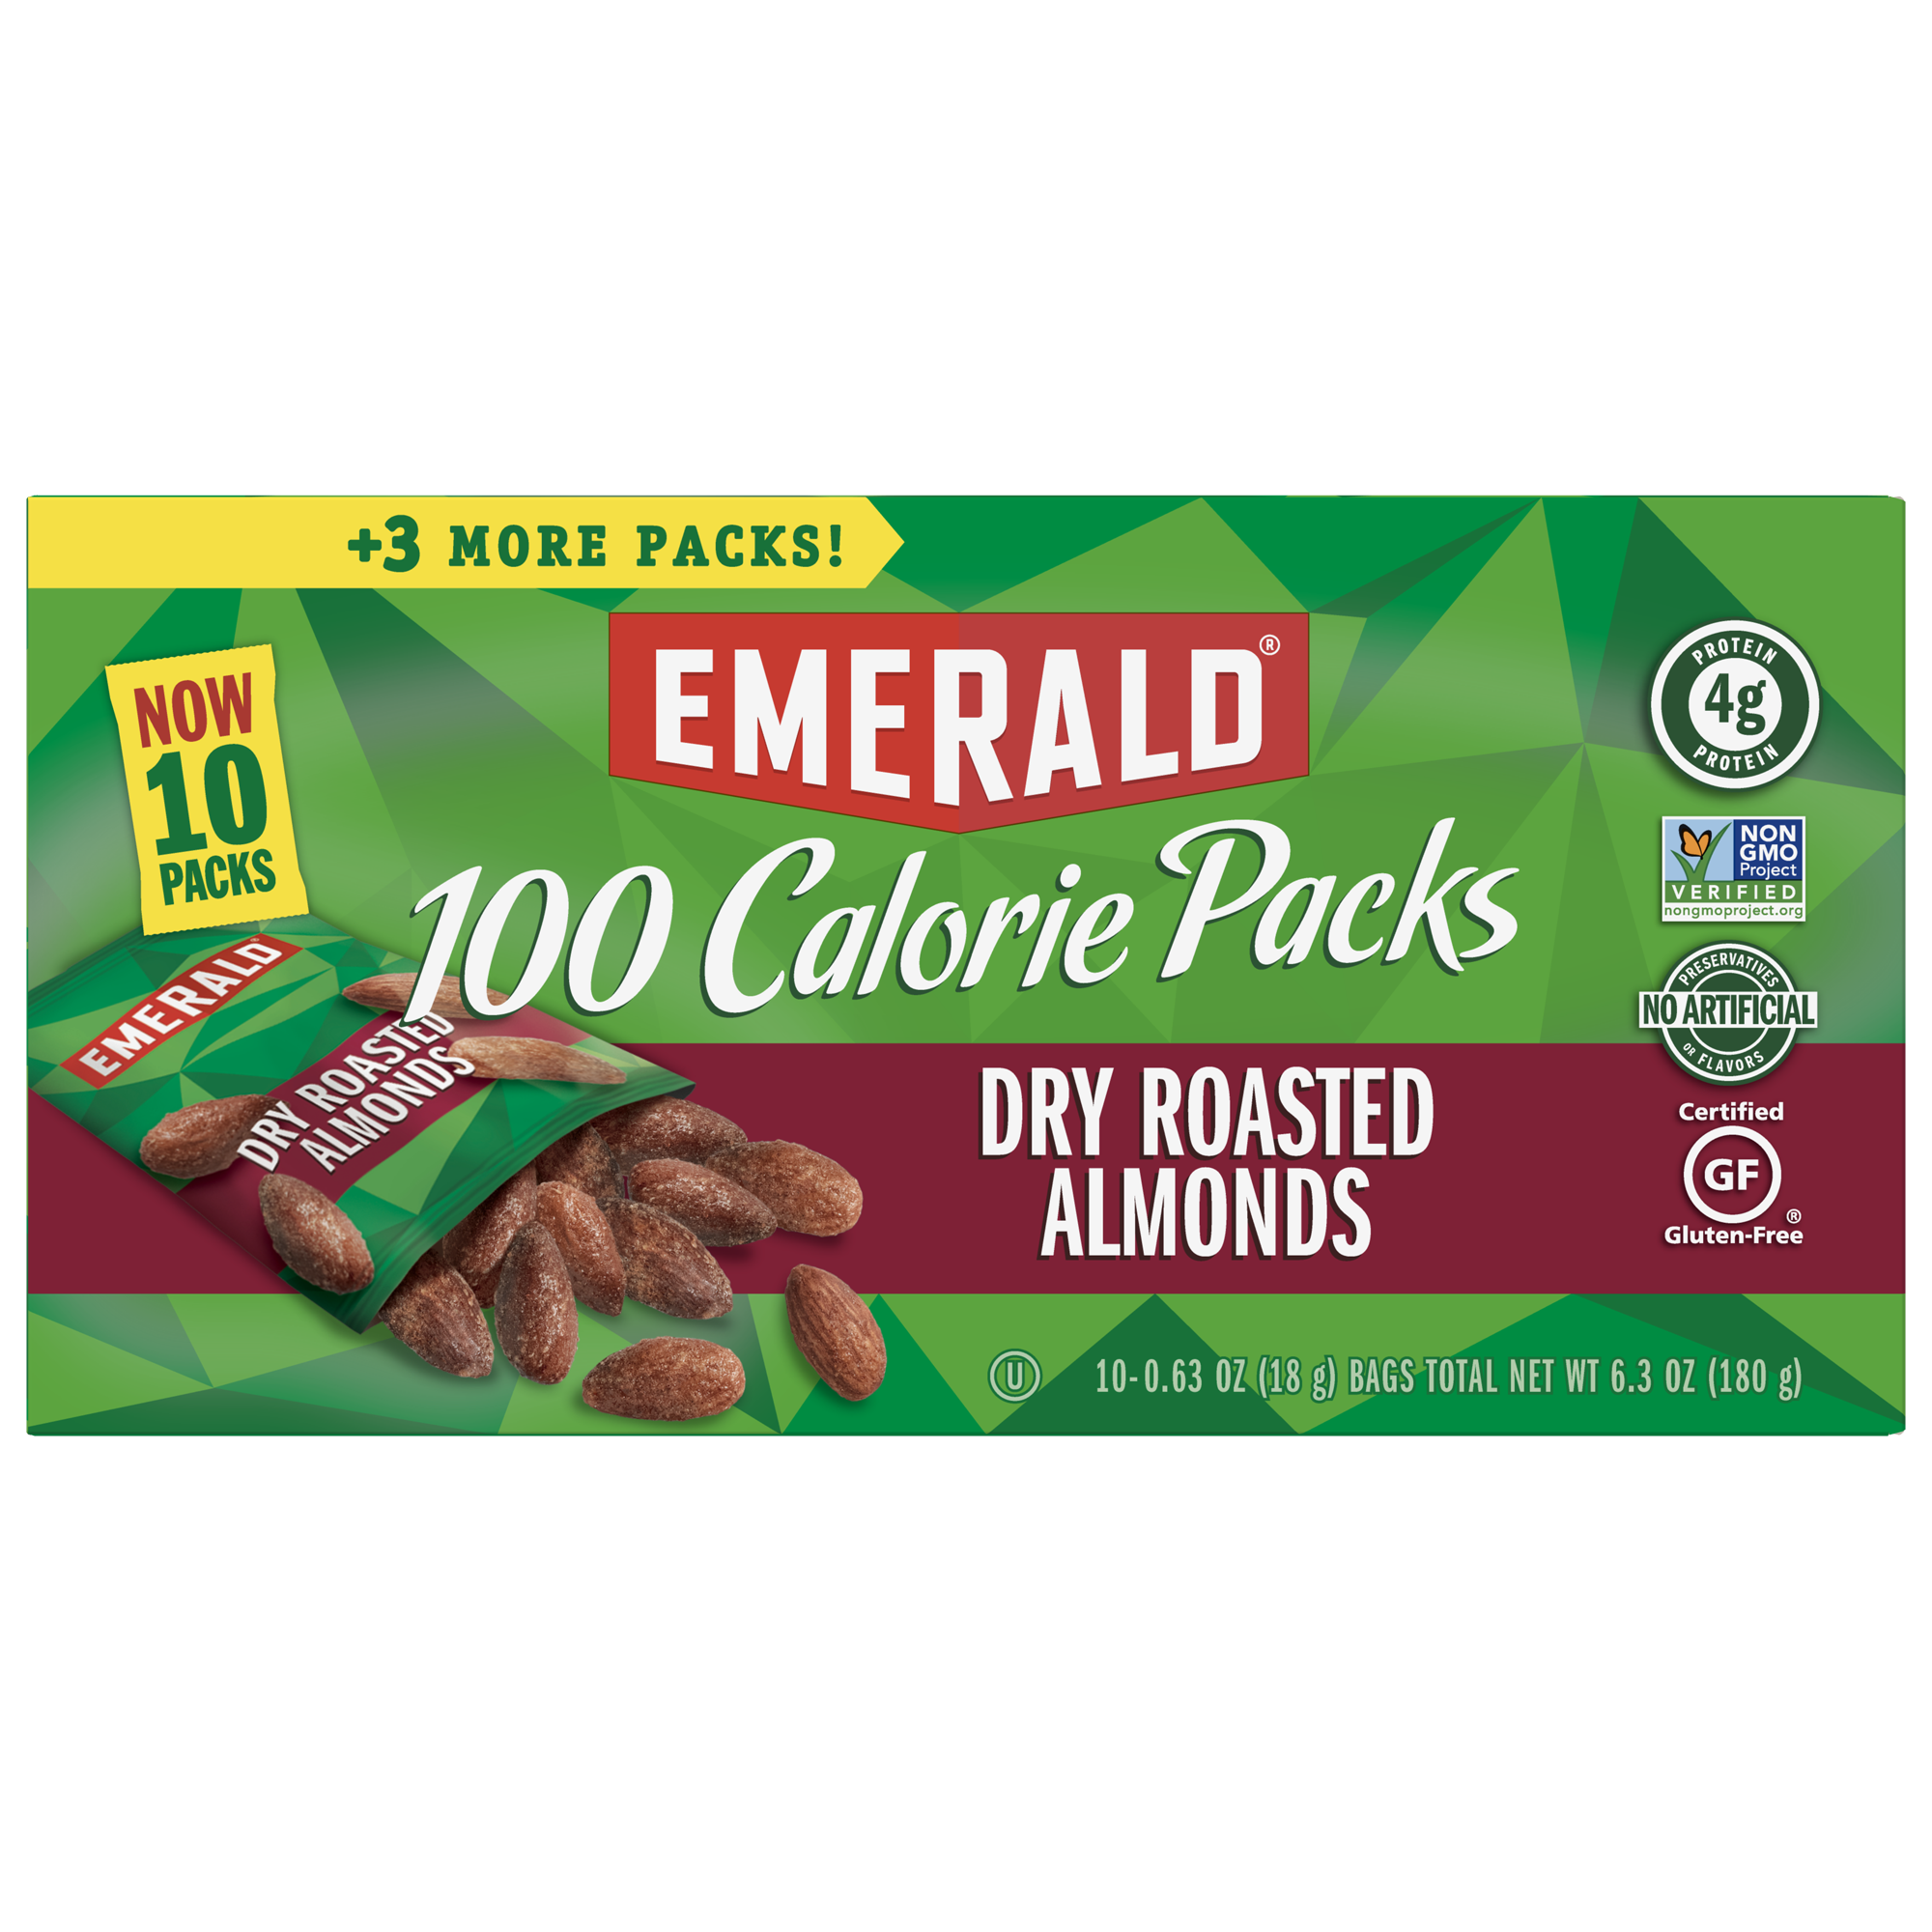 Emerald 100 Calorie Pack Dry Roasted Almonds, 0.63 Oz., 10 Count